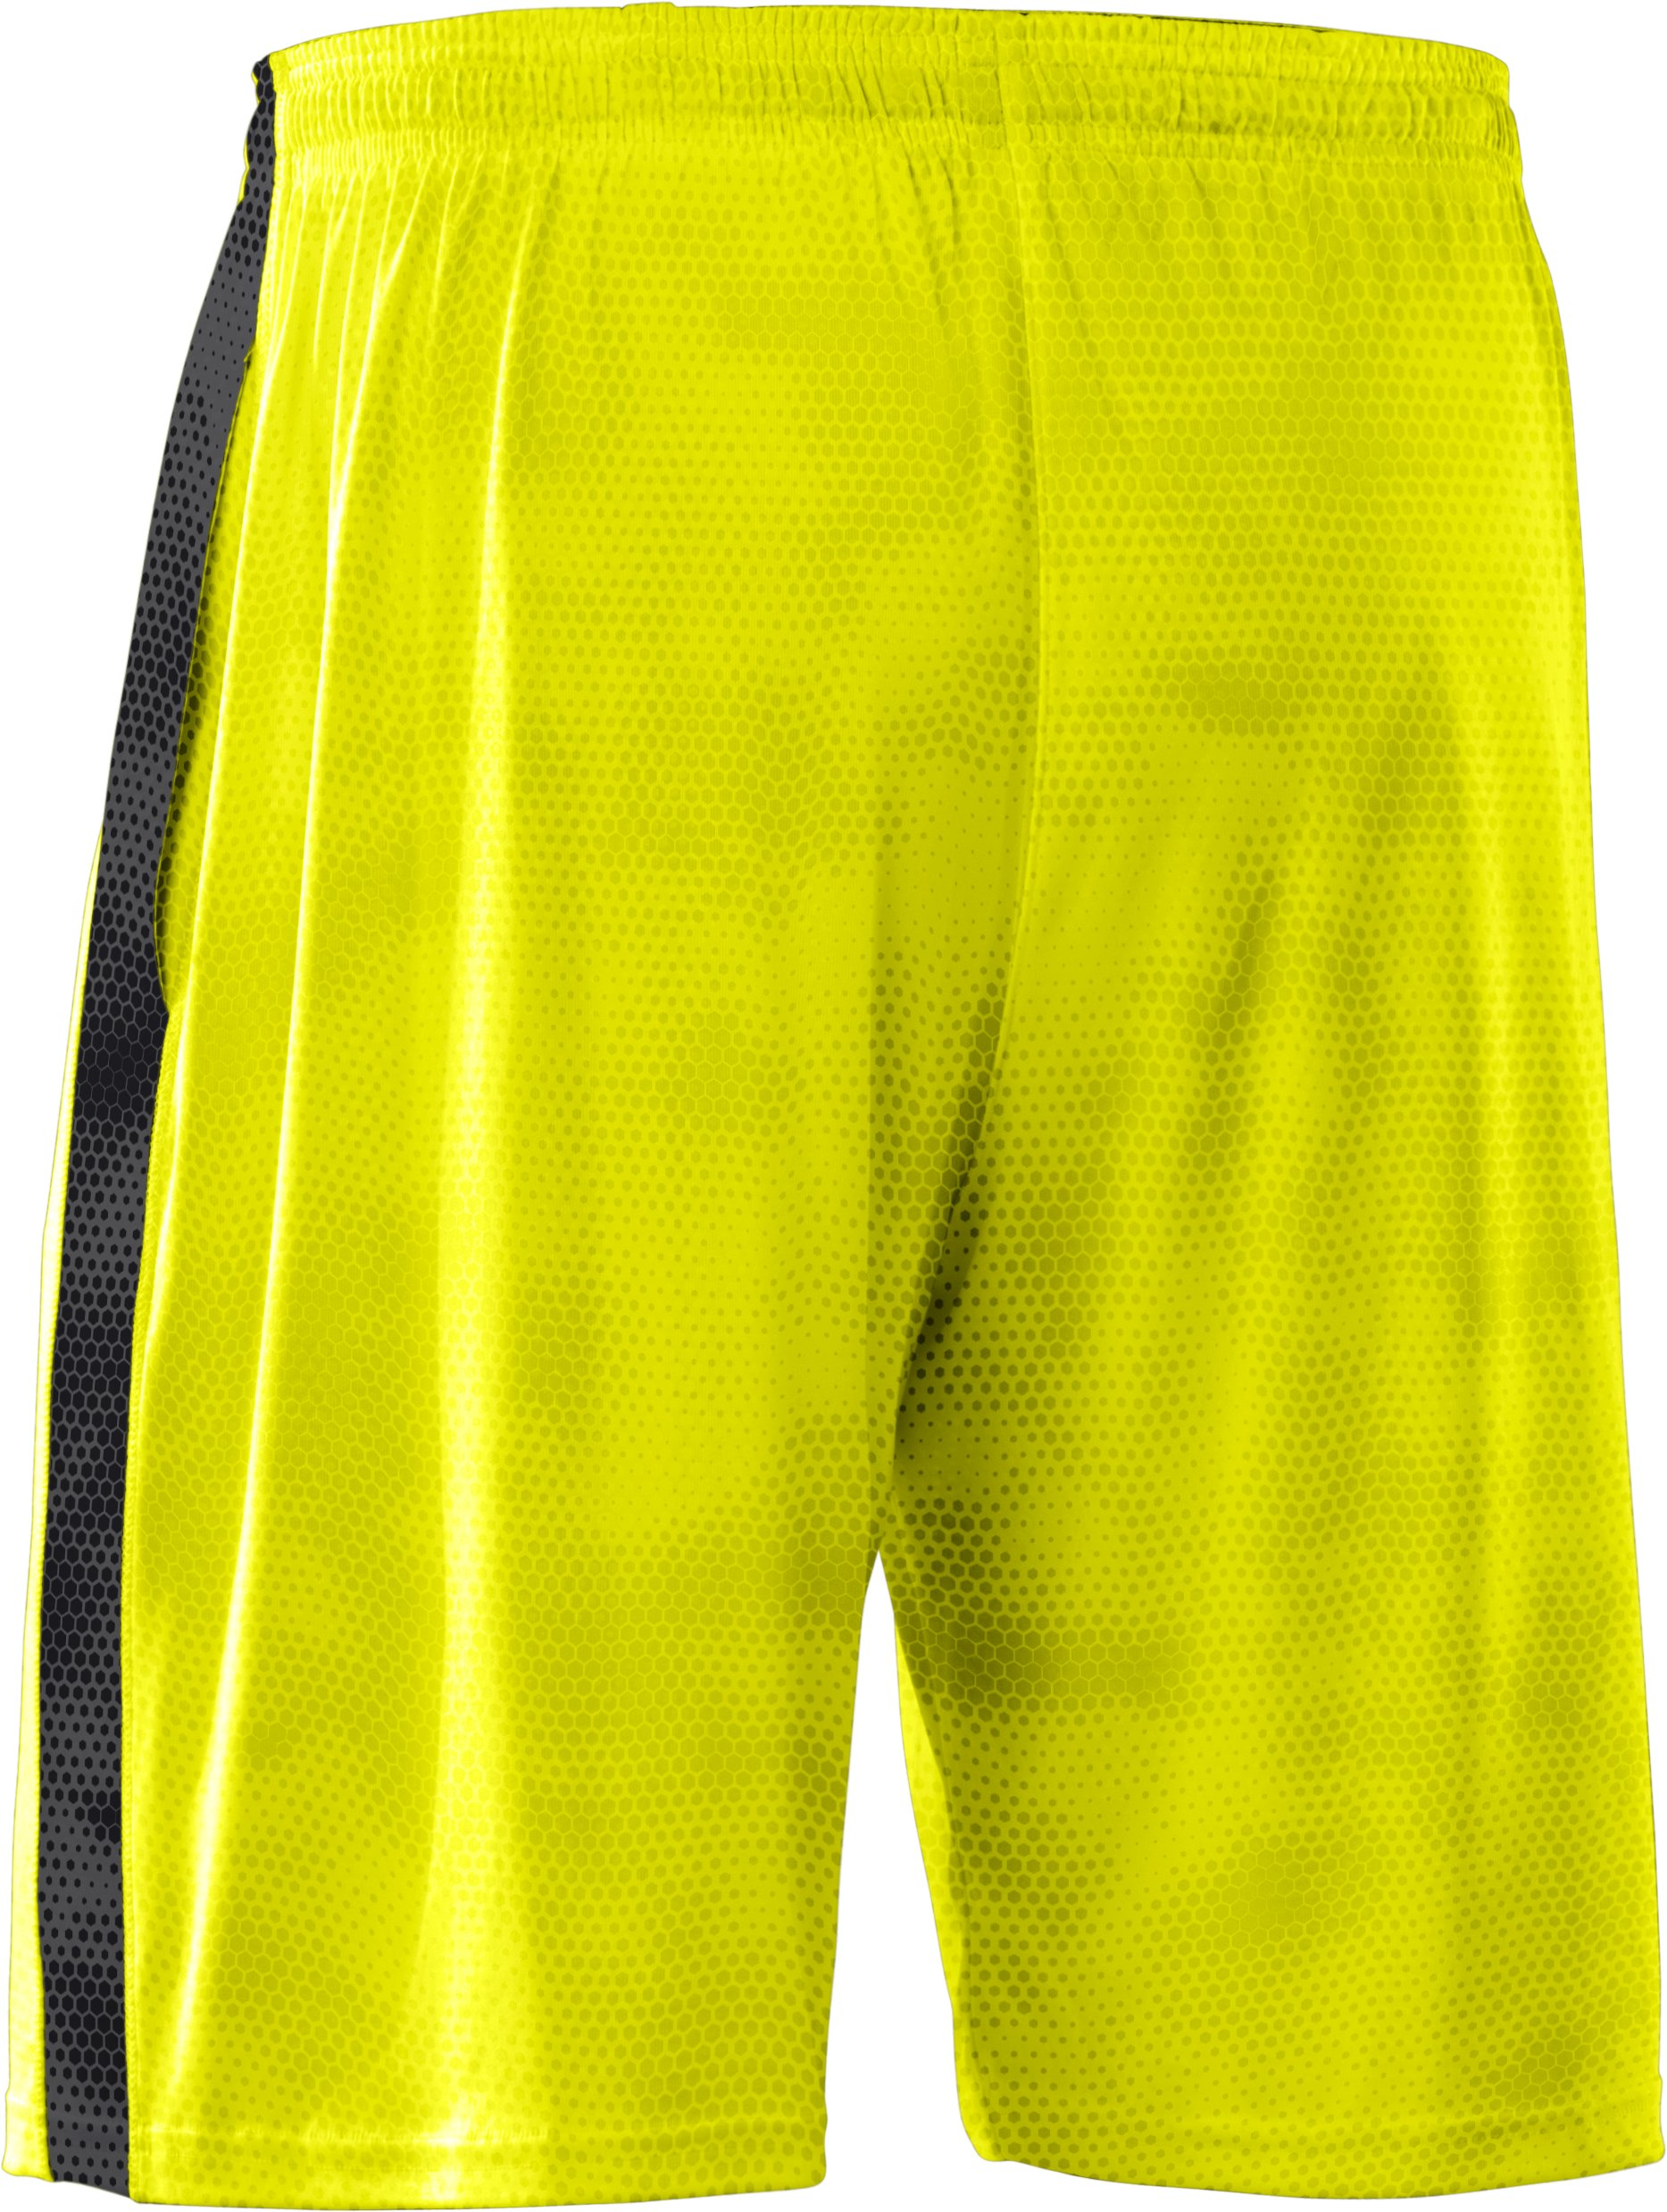 Men's UA Micro Printed Shorts, High-Vis Yellow, undefined